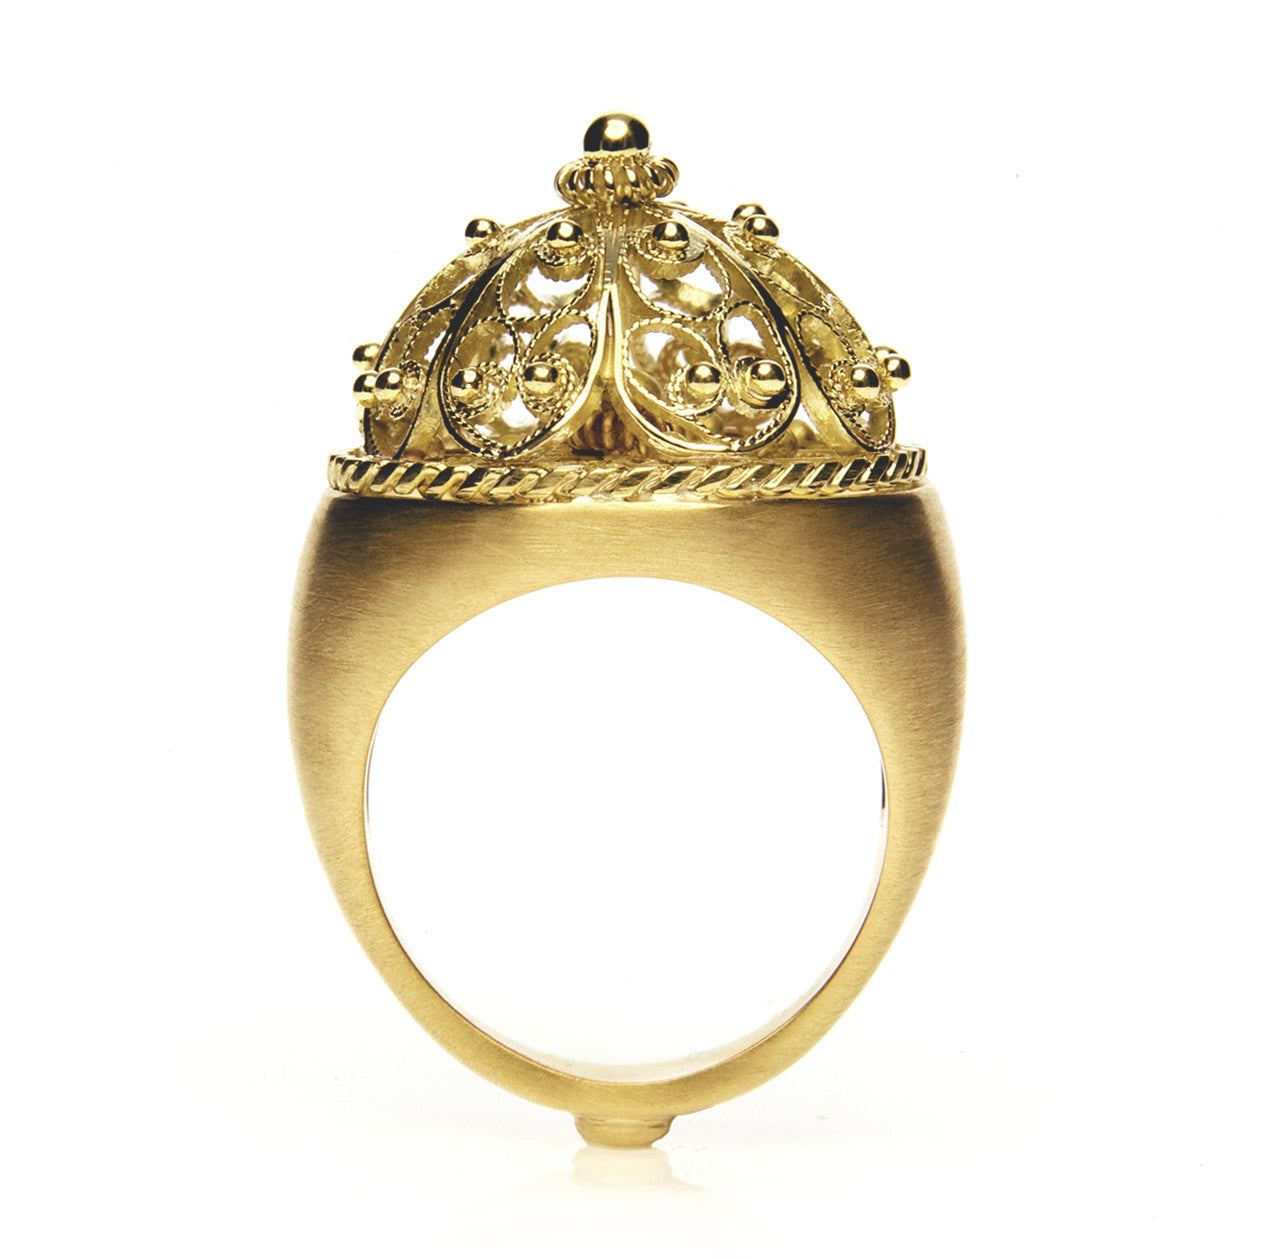 Bespoke Filigree Bombe Ring